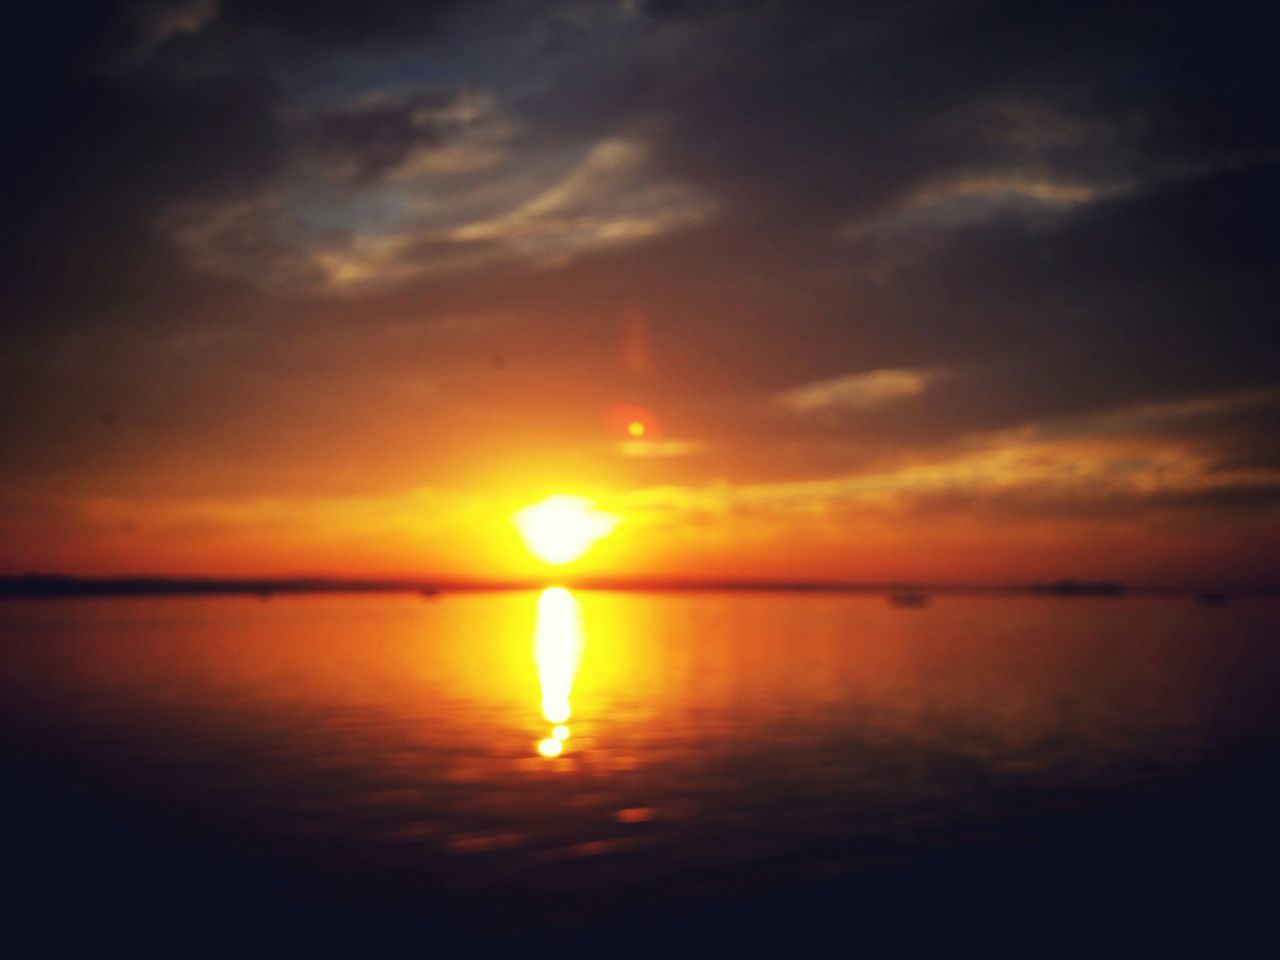 sunset, sun, scenics, nature, beauty in nature, tranquility, sea, reflection, water, tranquil scene, sky, idyllic, no people, silhouette, cloud - sky, waterfront, outdoors, horizon over water, sunlight